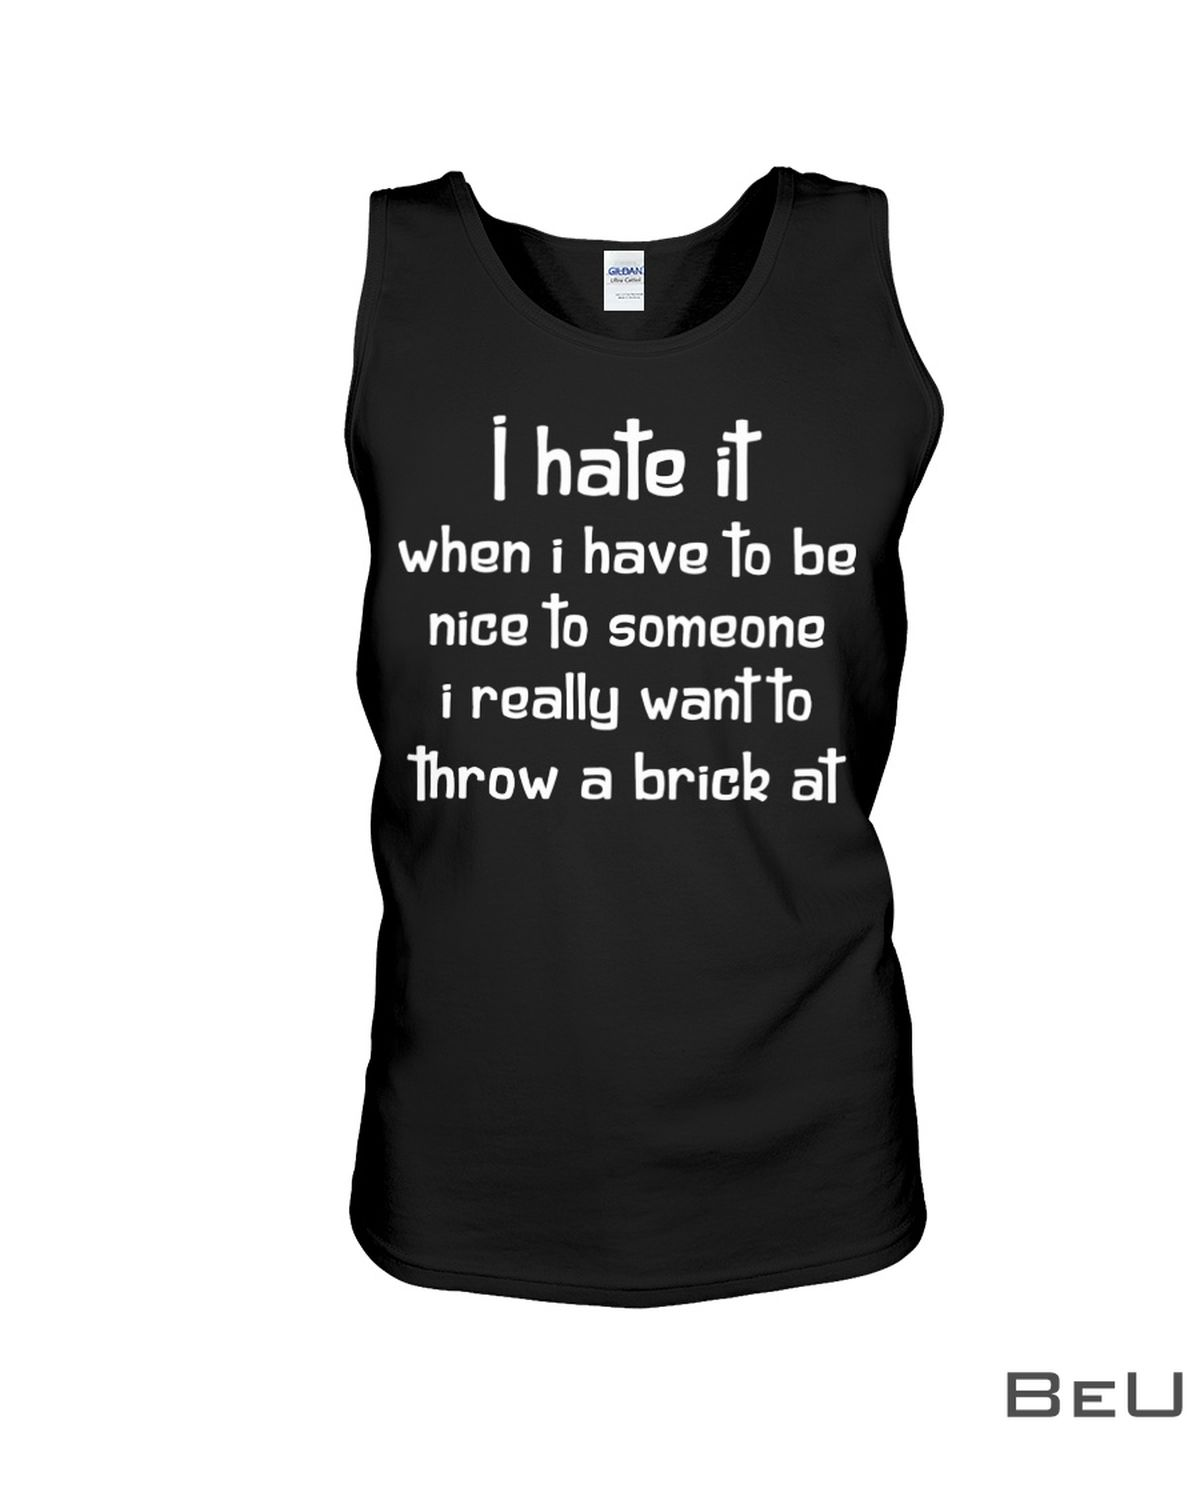 I Hate It When I Have To Be Nice To Someone I Really Want To Throw A Brick At Shirt c